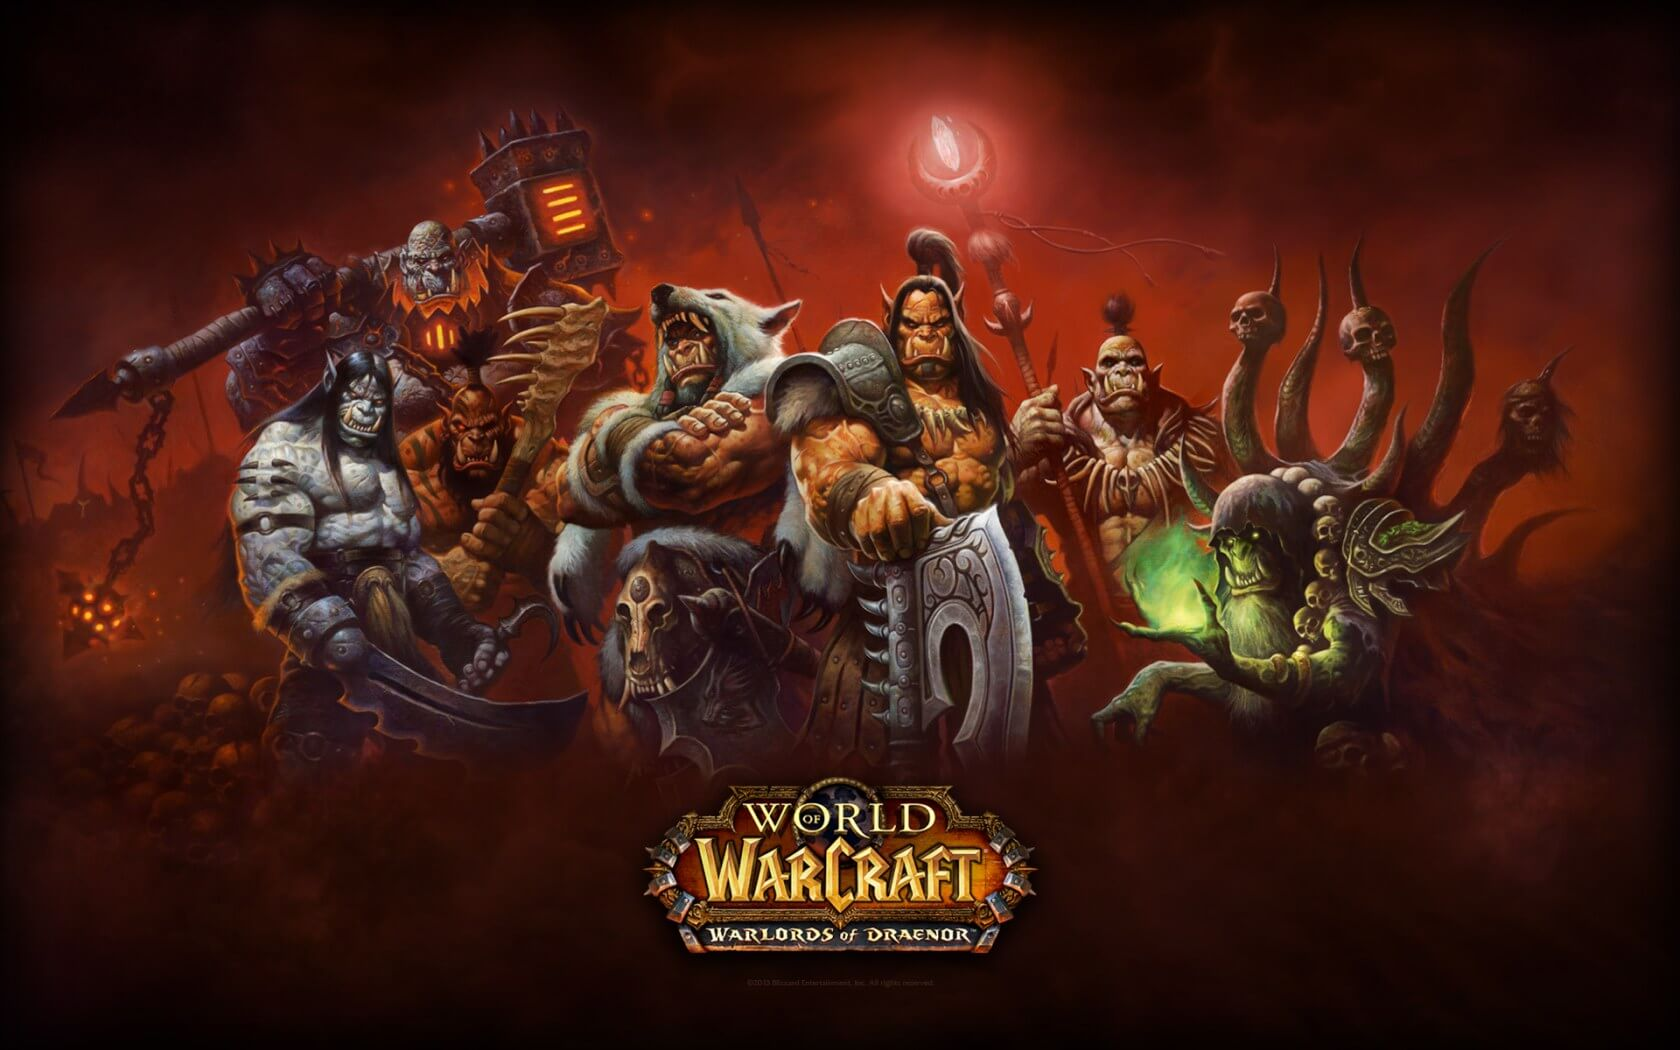 World of Warcraft DDoS Attacker Sentenced a Year Behind Bars